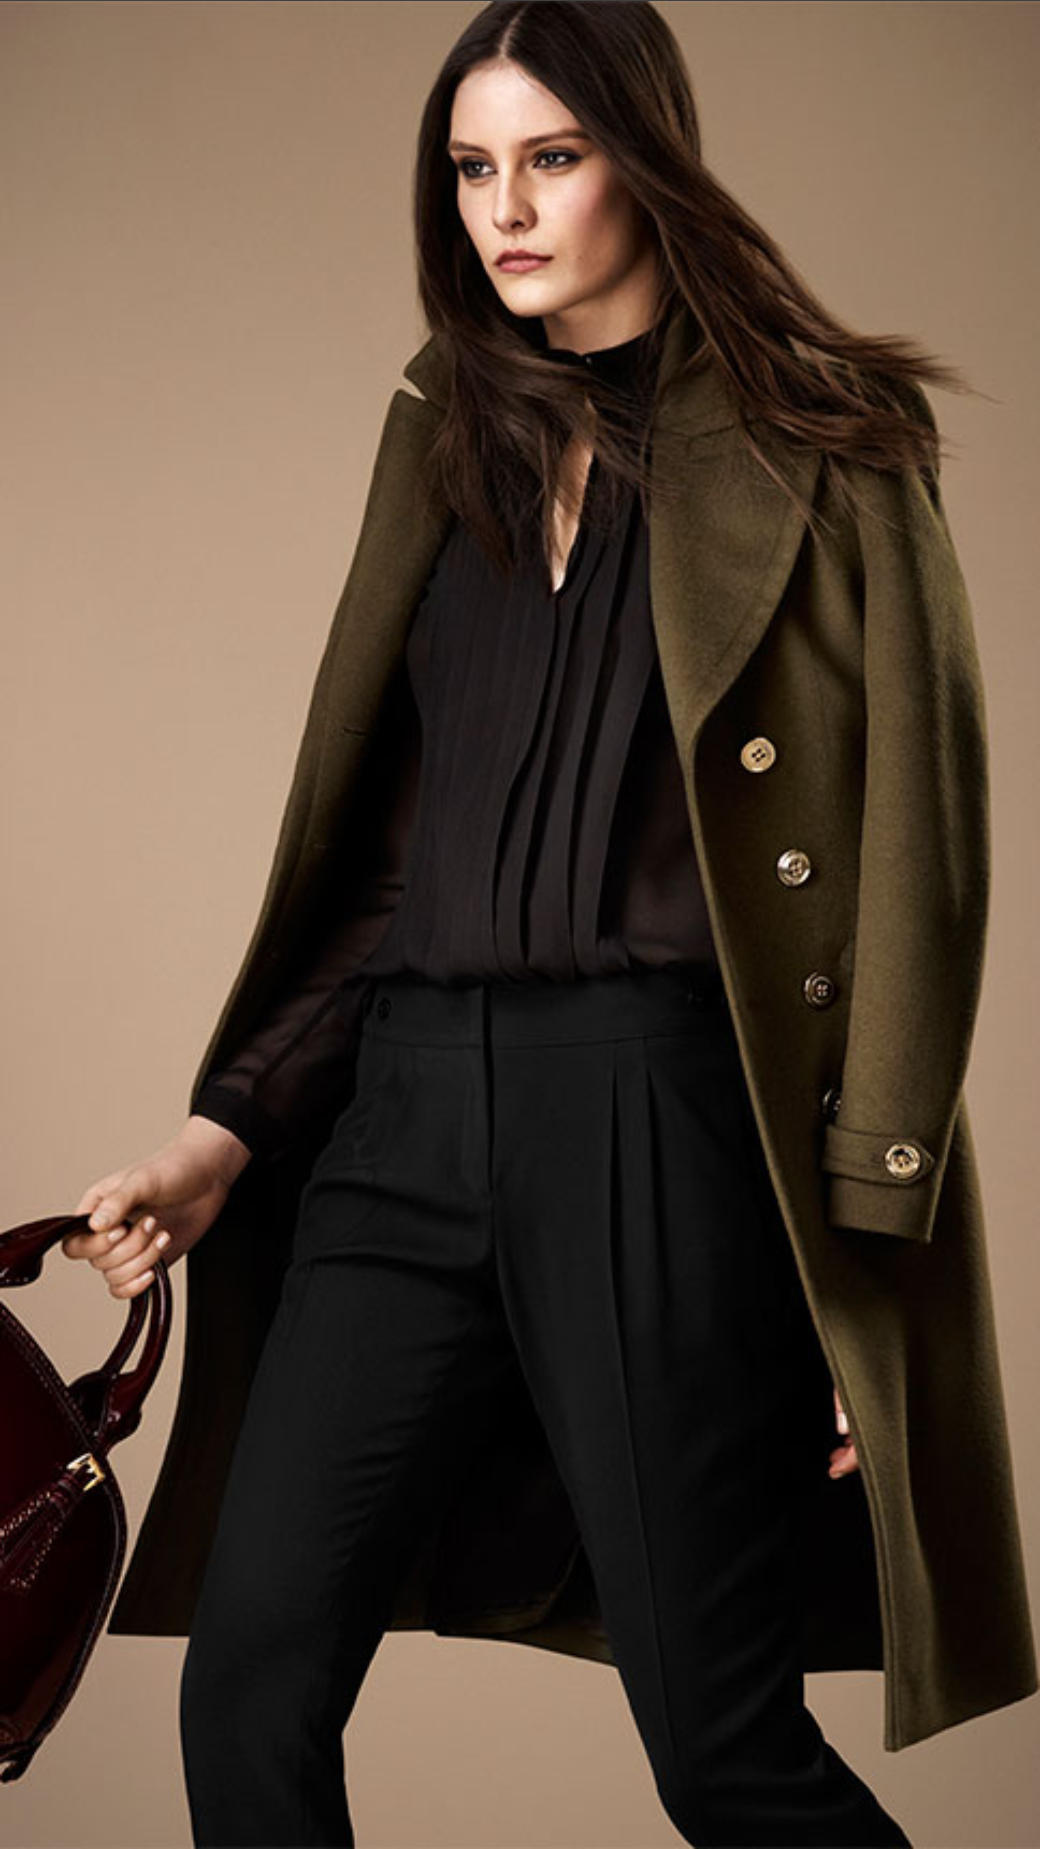 Lyst - Burberry Wool Cashmere Military Coat in Green Vans Careers